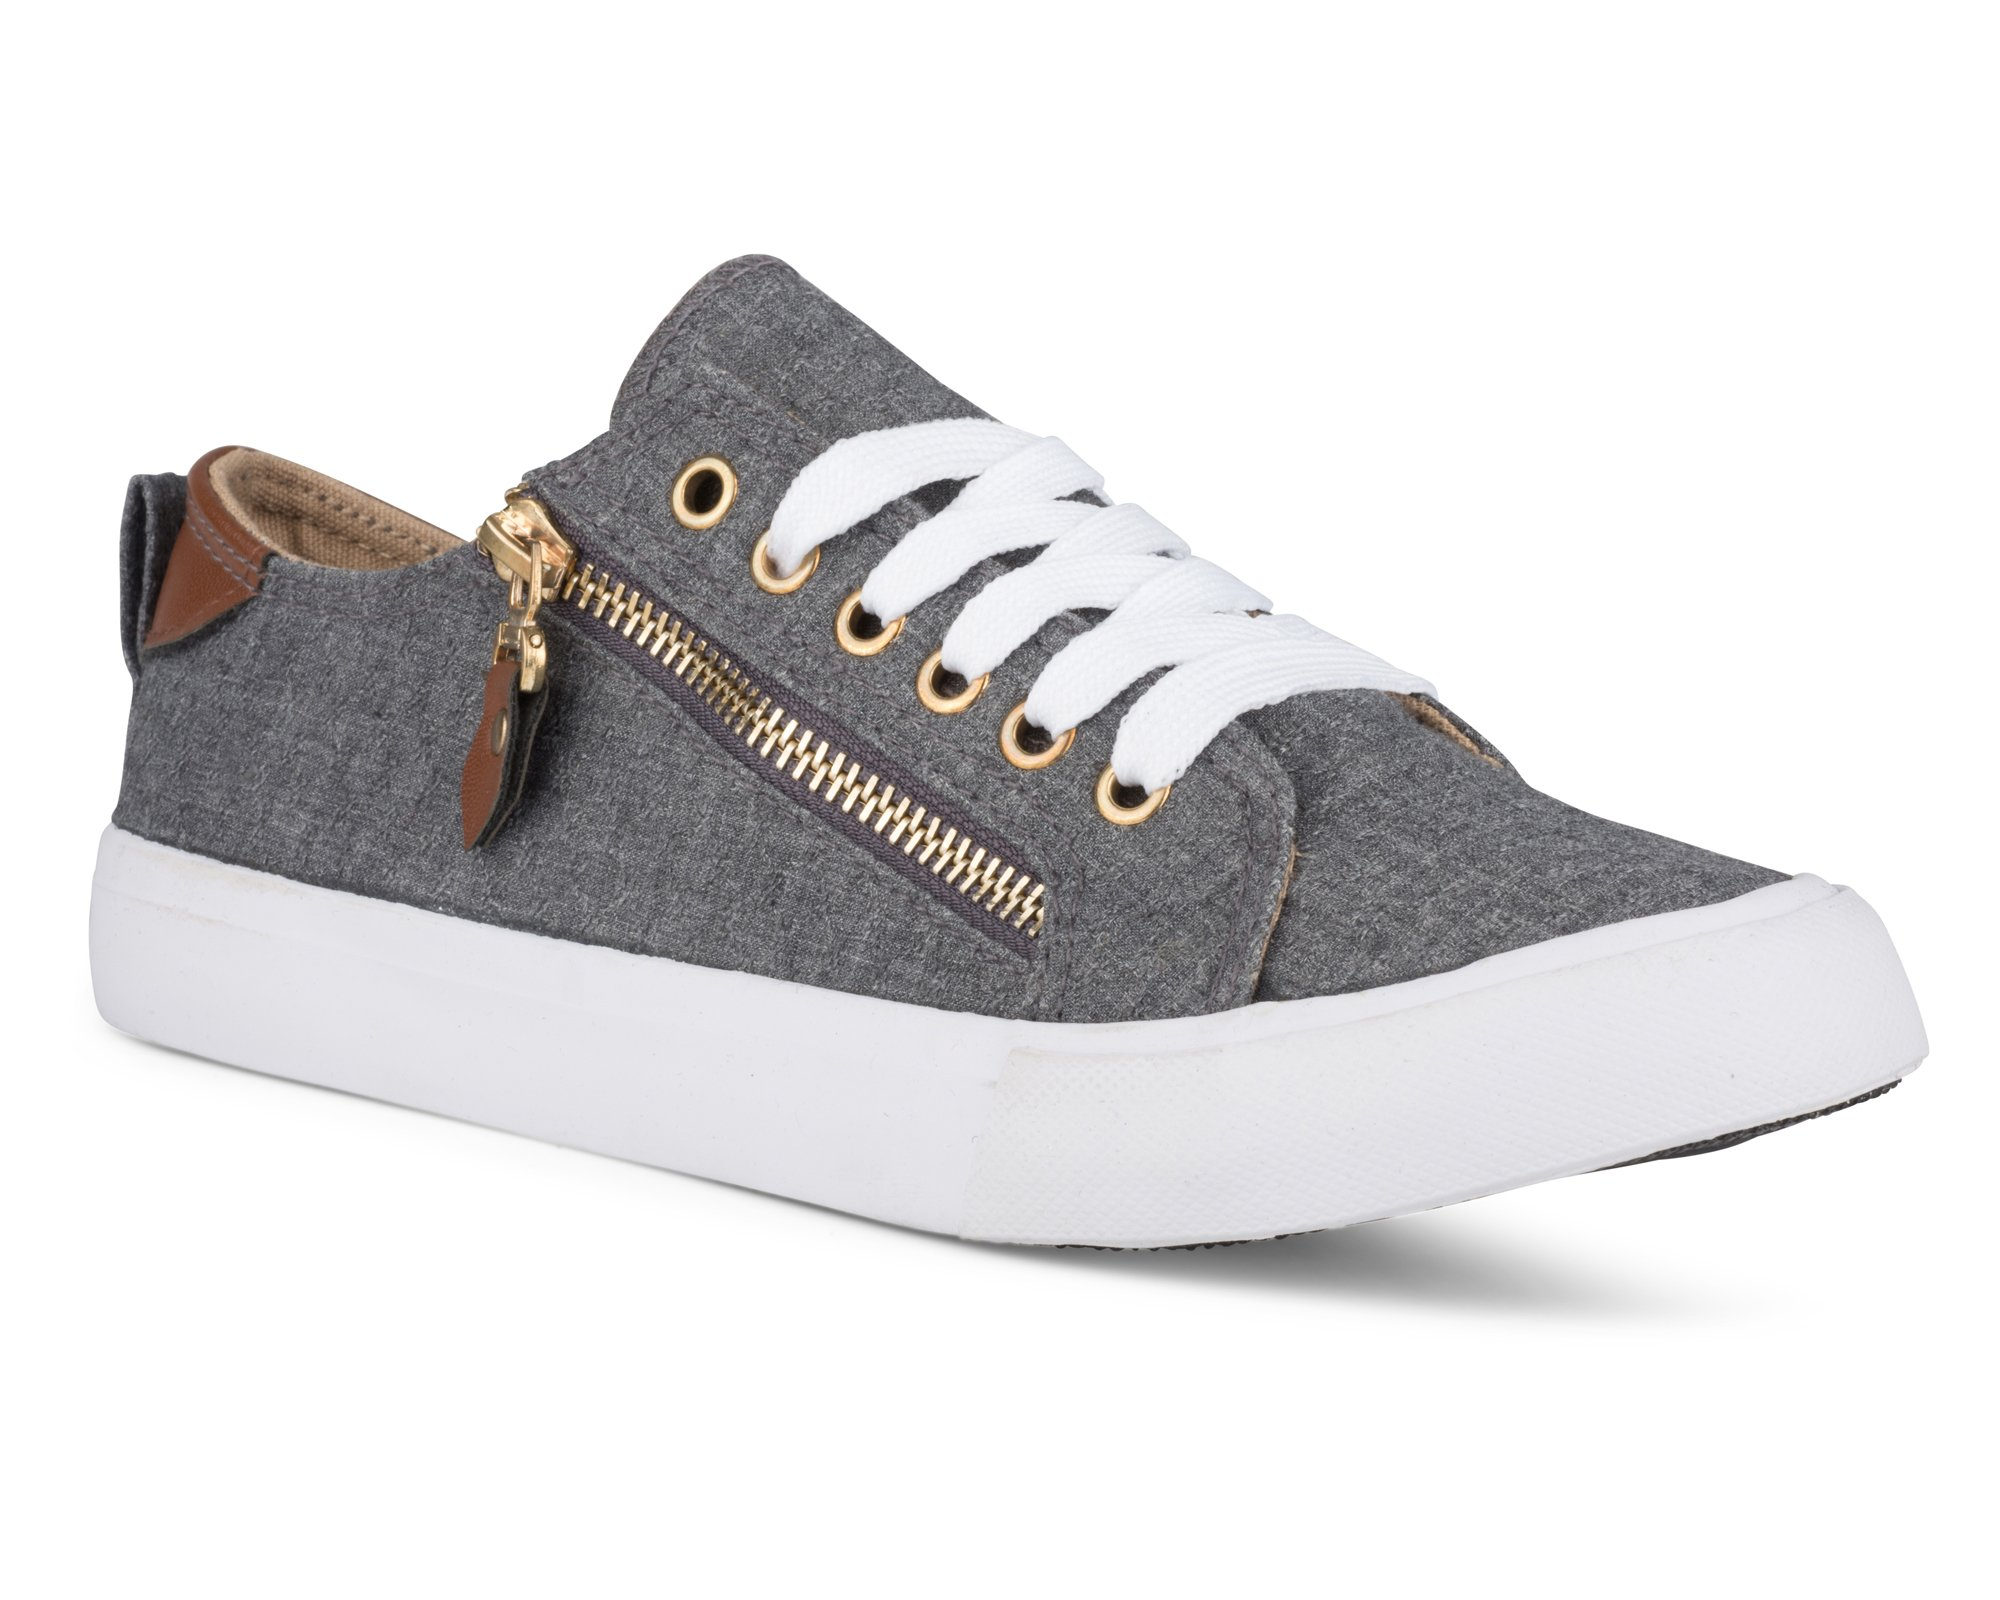 Twisted Women's KIX Canvas Sneakers with Decorative Zippers - KIXLO200CHARCOAL, Size 9